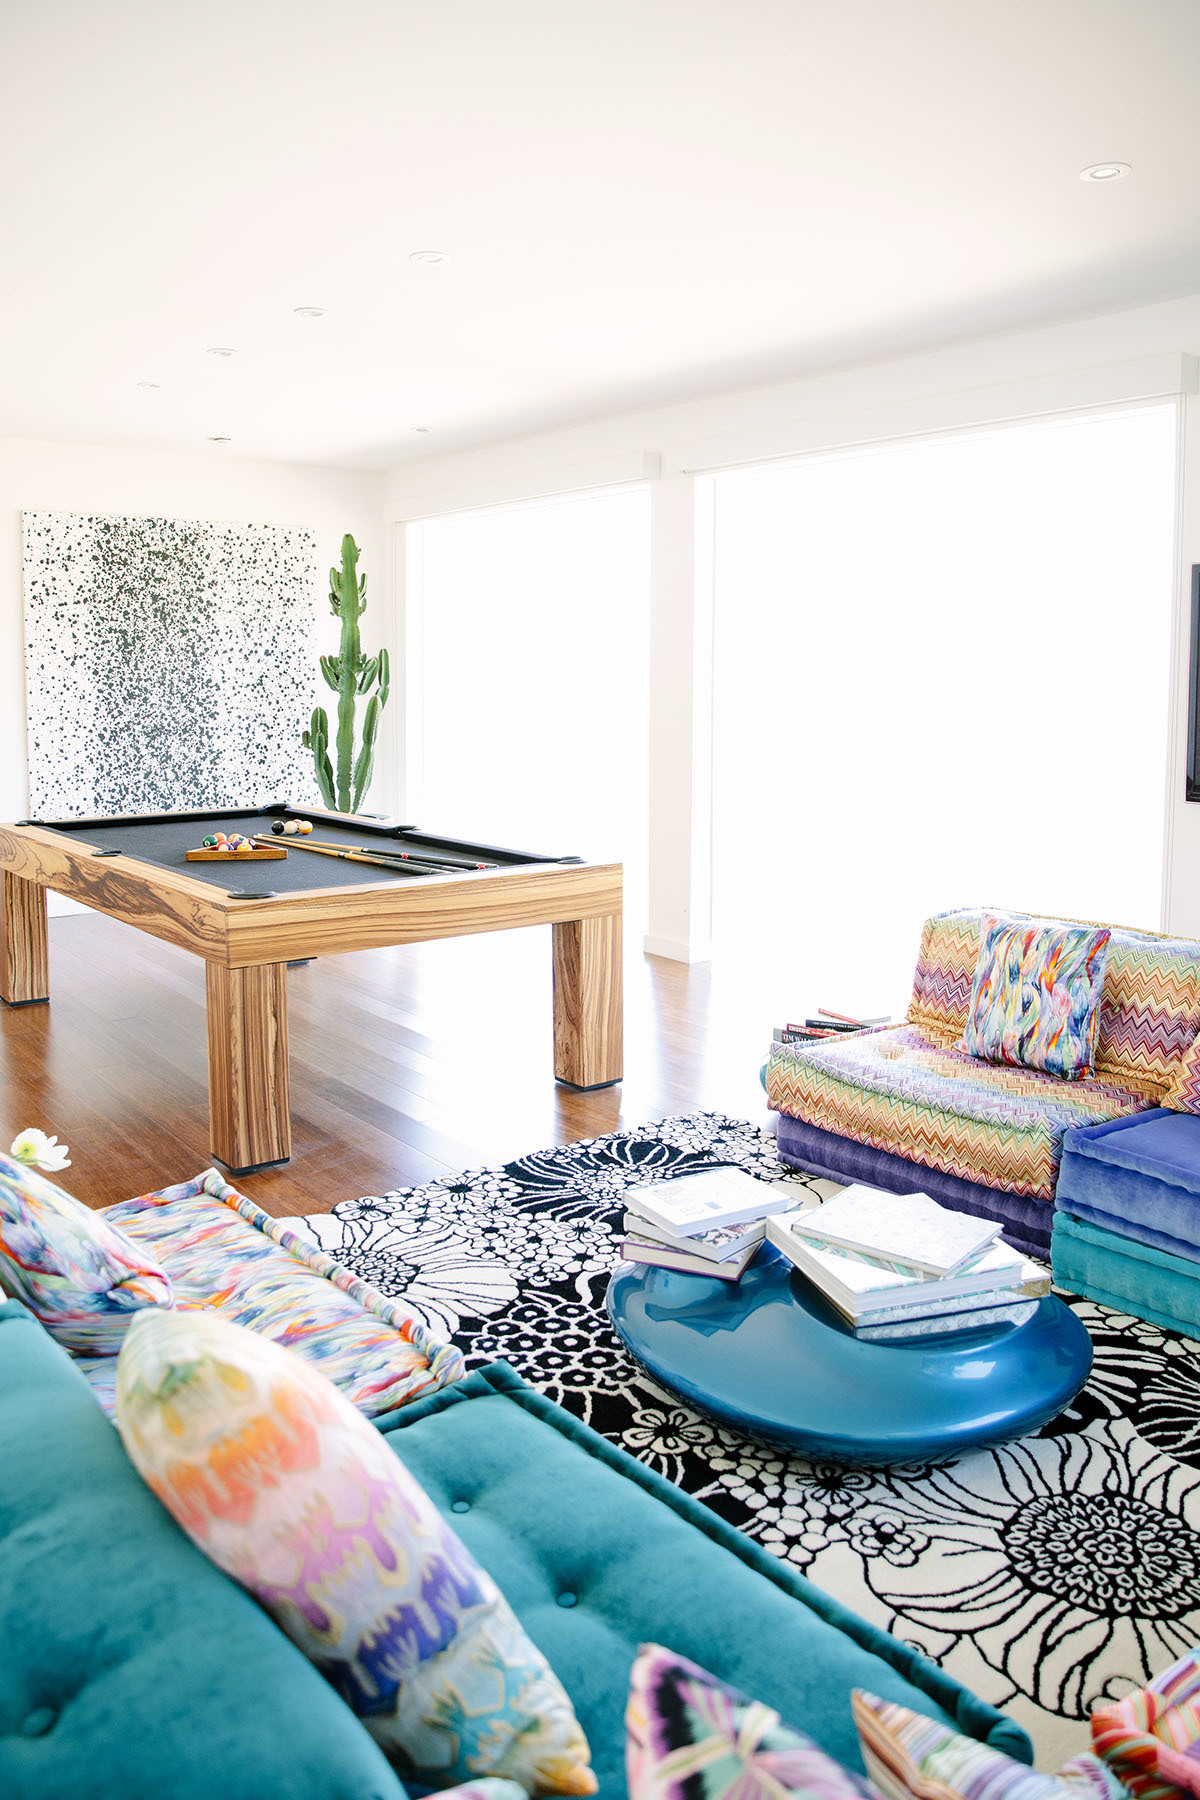 """My favorite piece? Our Missoni Mah Jong Sofa by Roche Bobois,"" smiles Fister. ""I was lucky enough to consult for them for many years and with that had the opportunity to purchase this special piece."" Don Popkes Artwork 